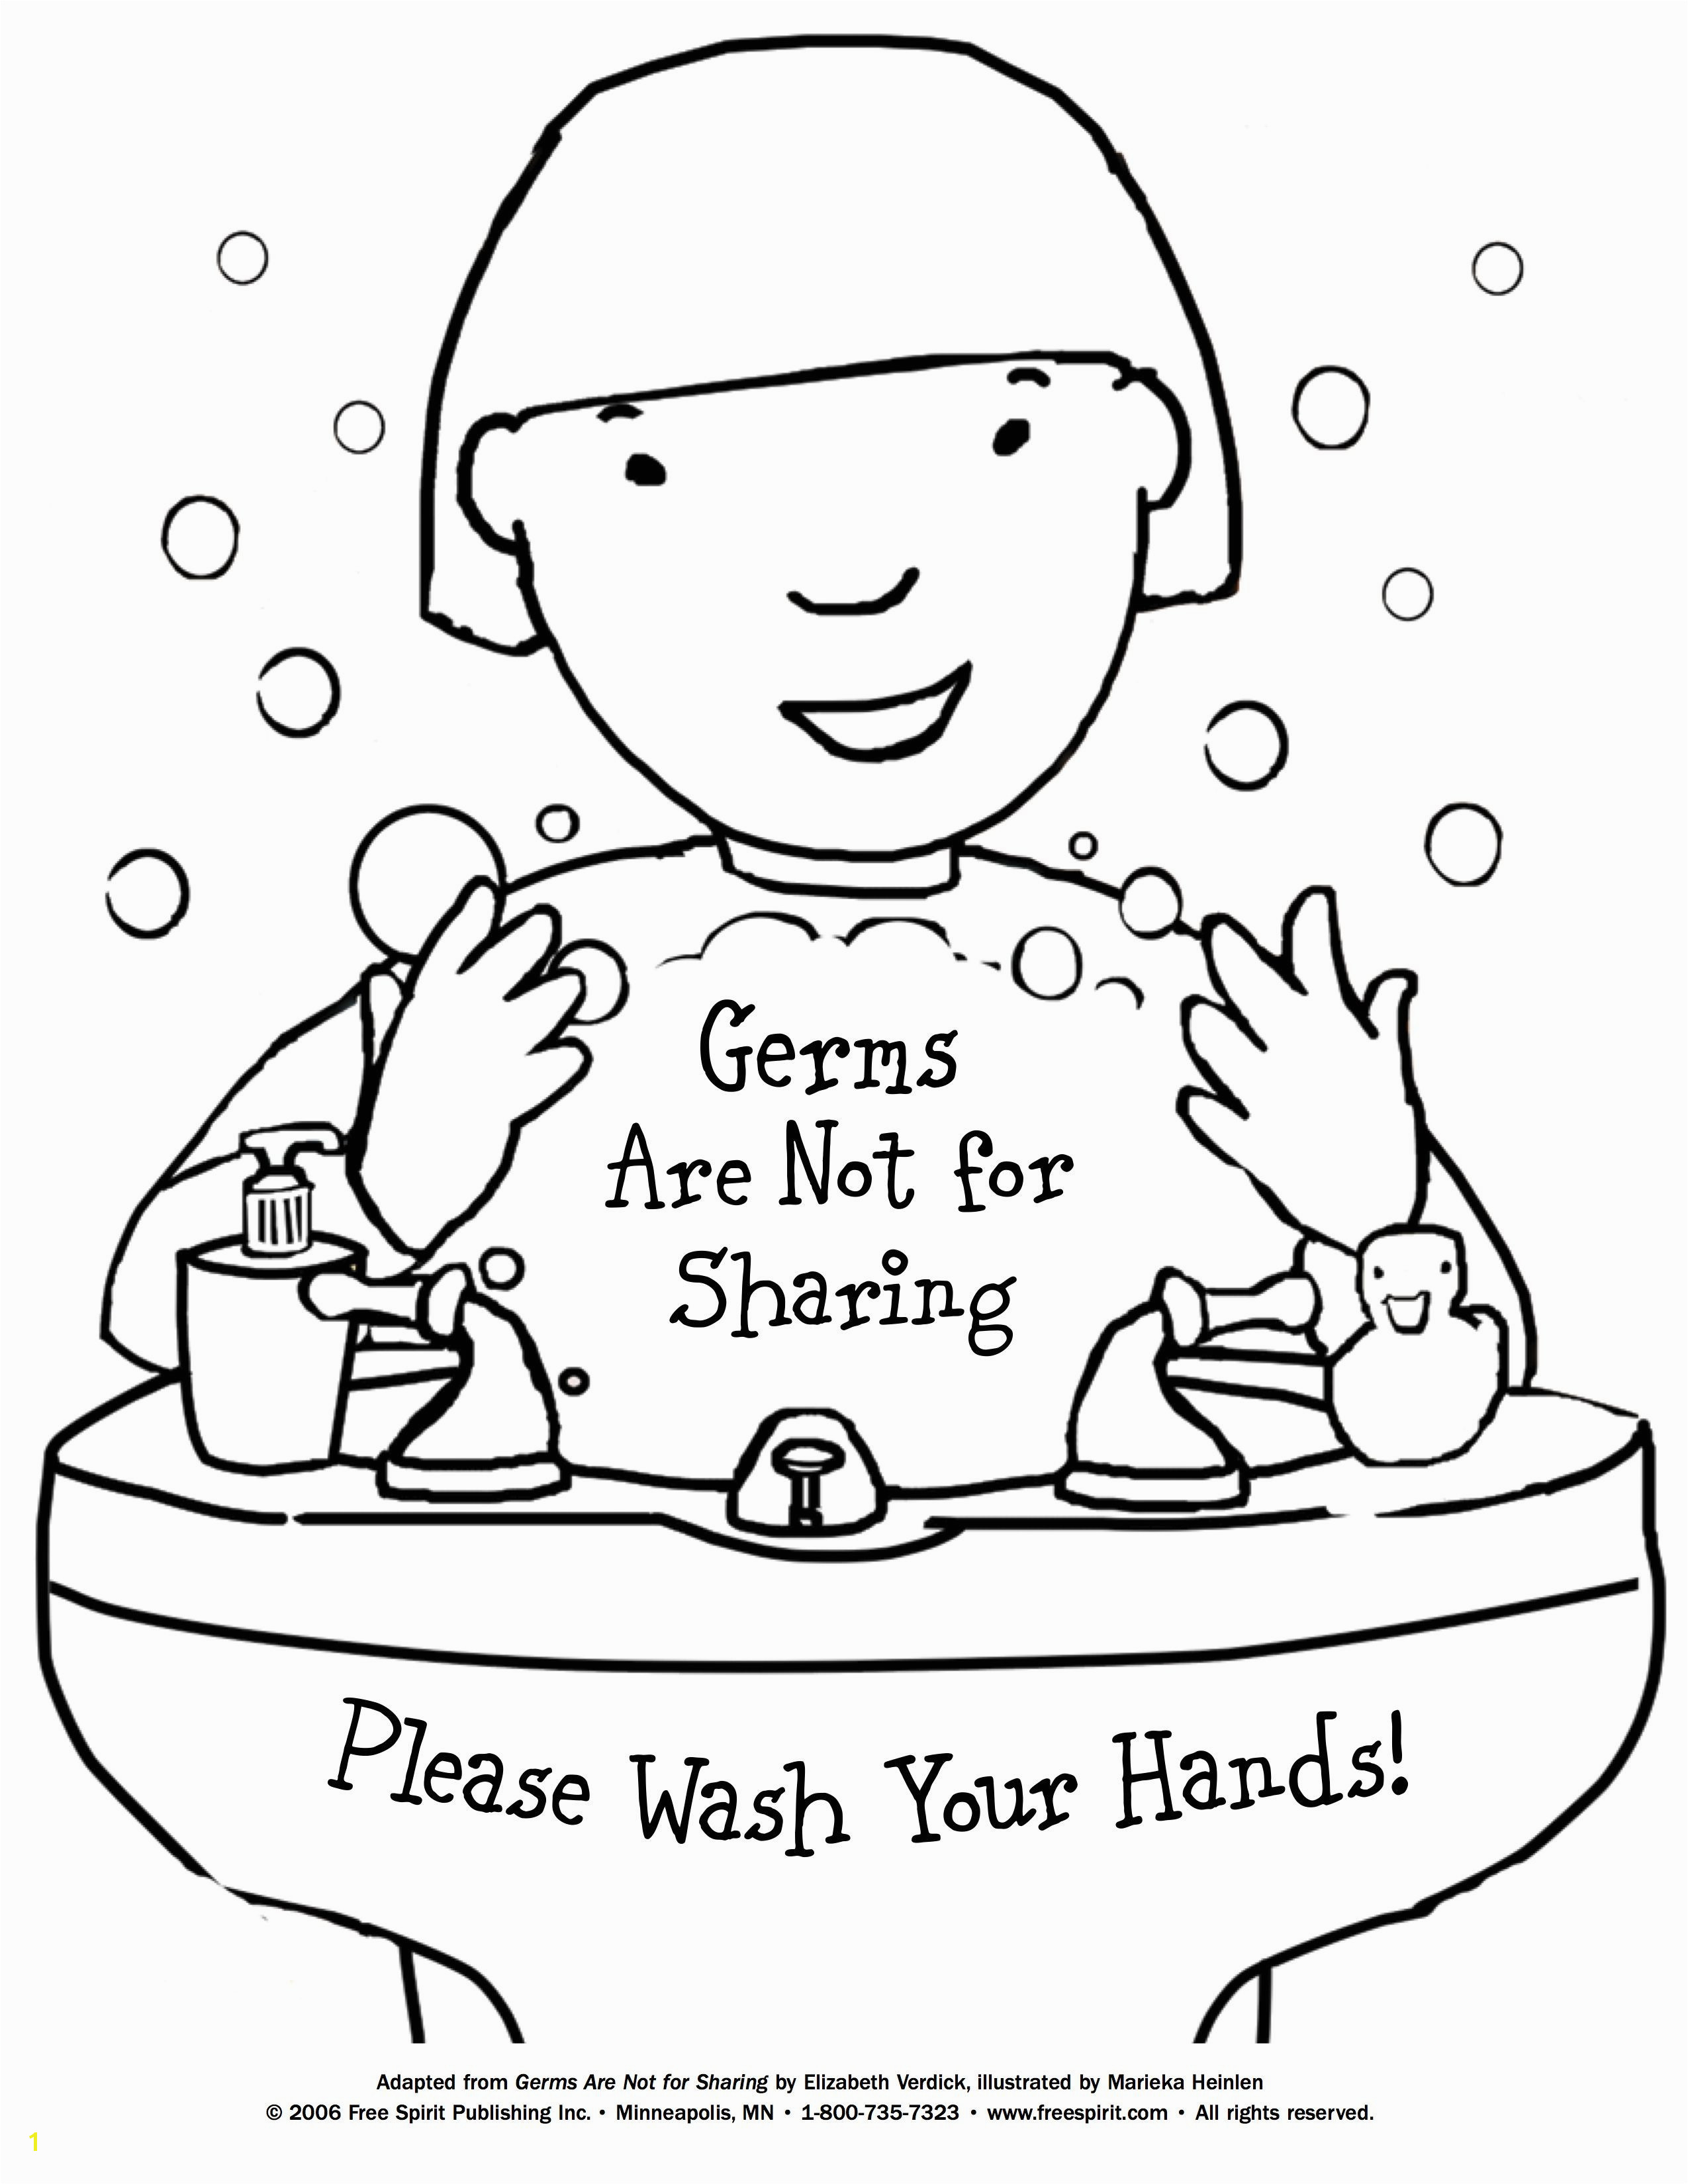 Criminal Minds Coloring Pages Best Handwashing Coloring Pages 1080—1500 14 Awesome Criminal